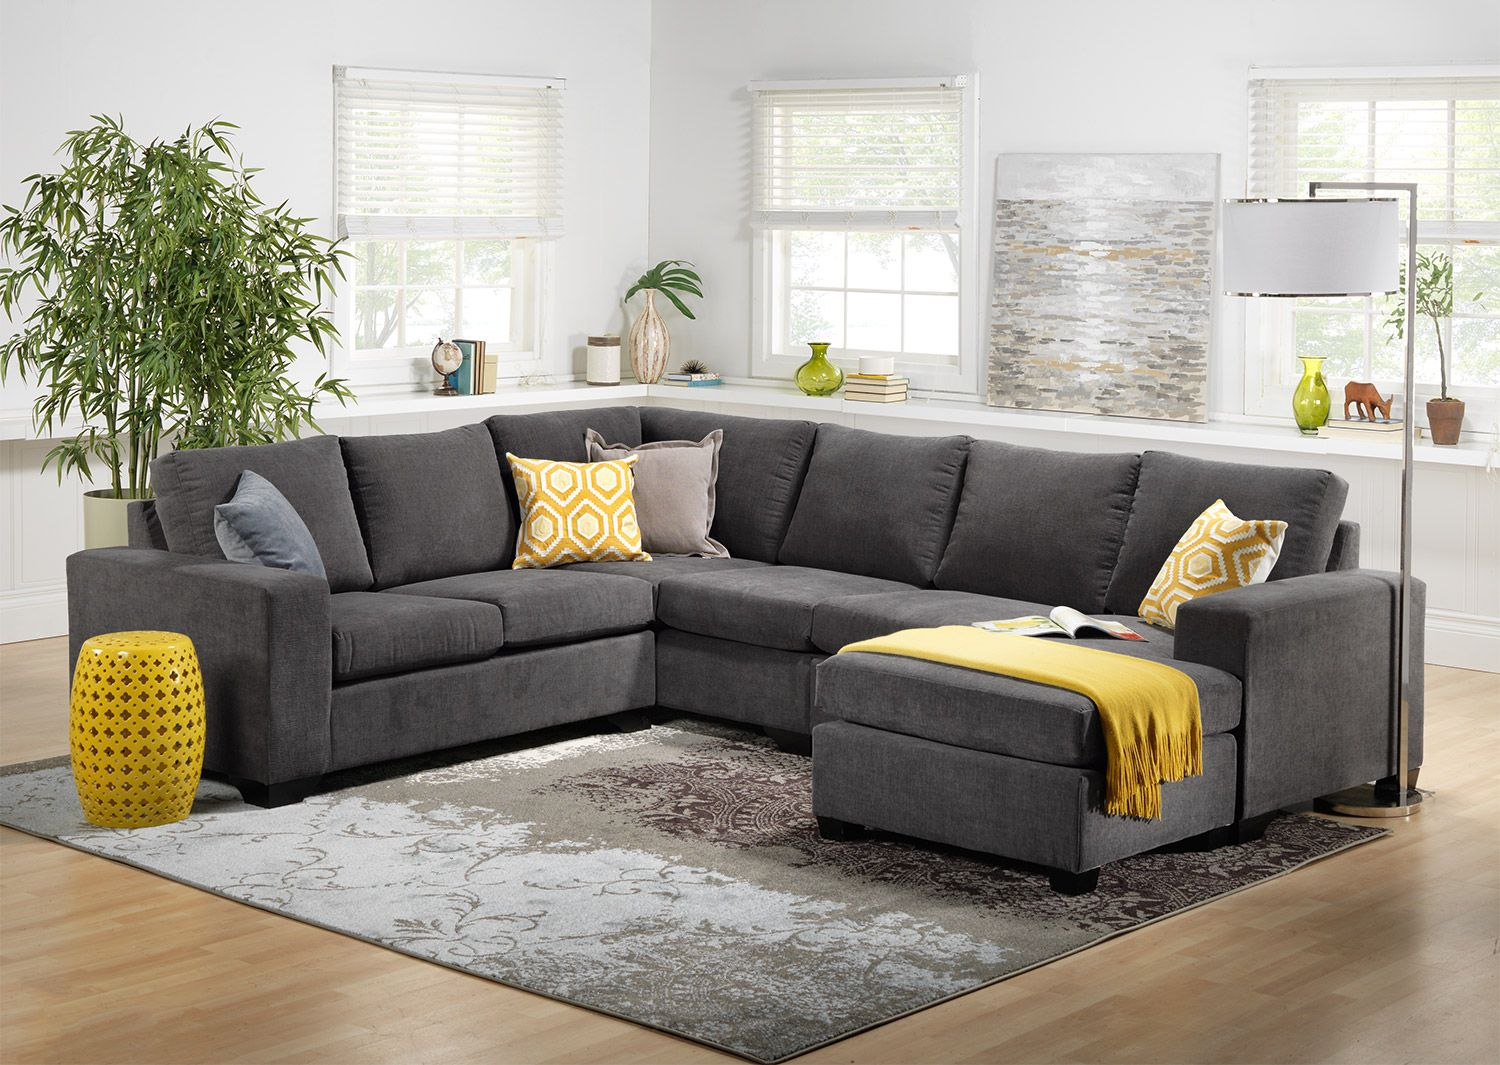 Beautiful Living Room Furniture   Danielle Sectional With Modular Chaise   Grey Part 26